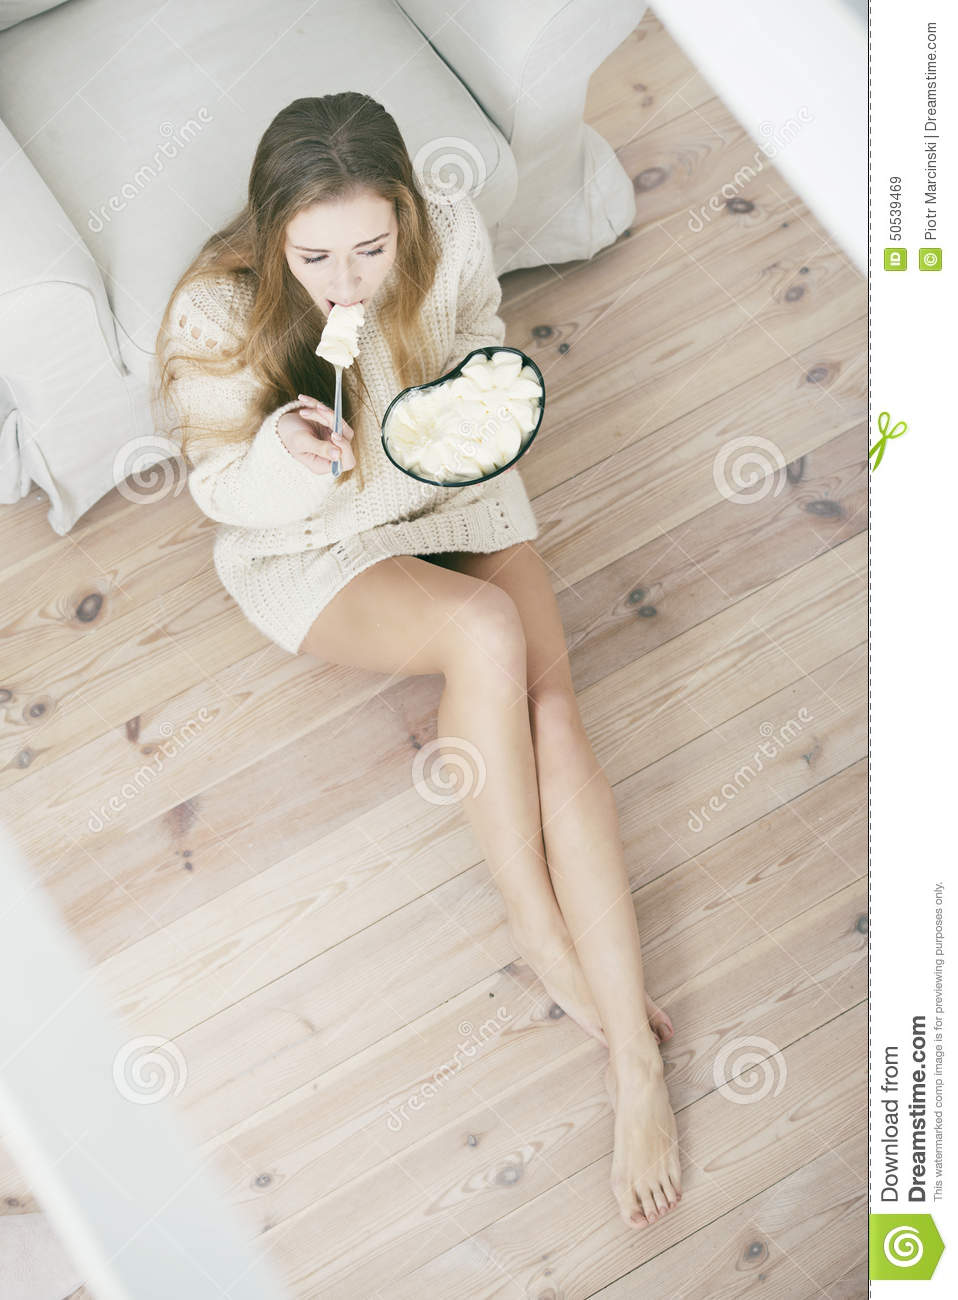 Young depressed woman eating ice cream.